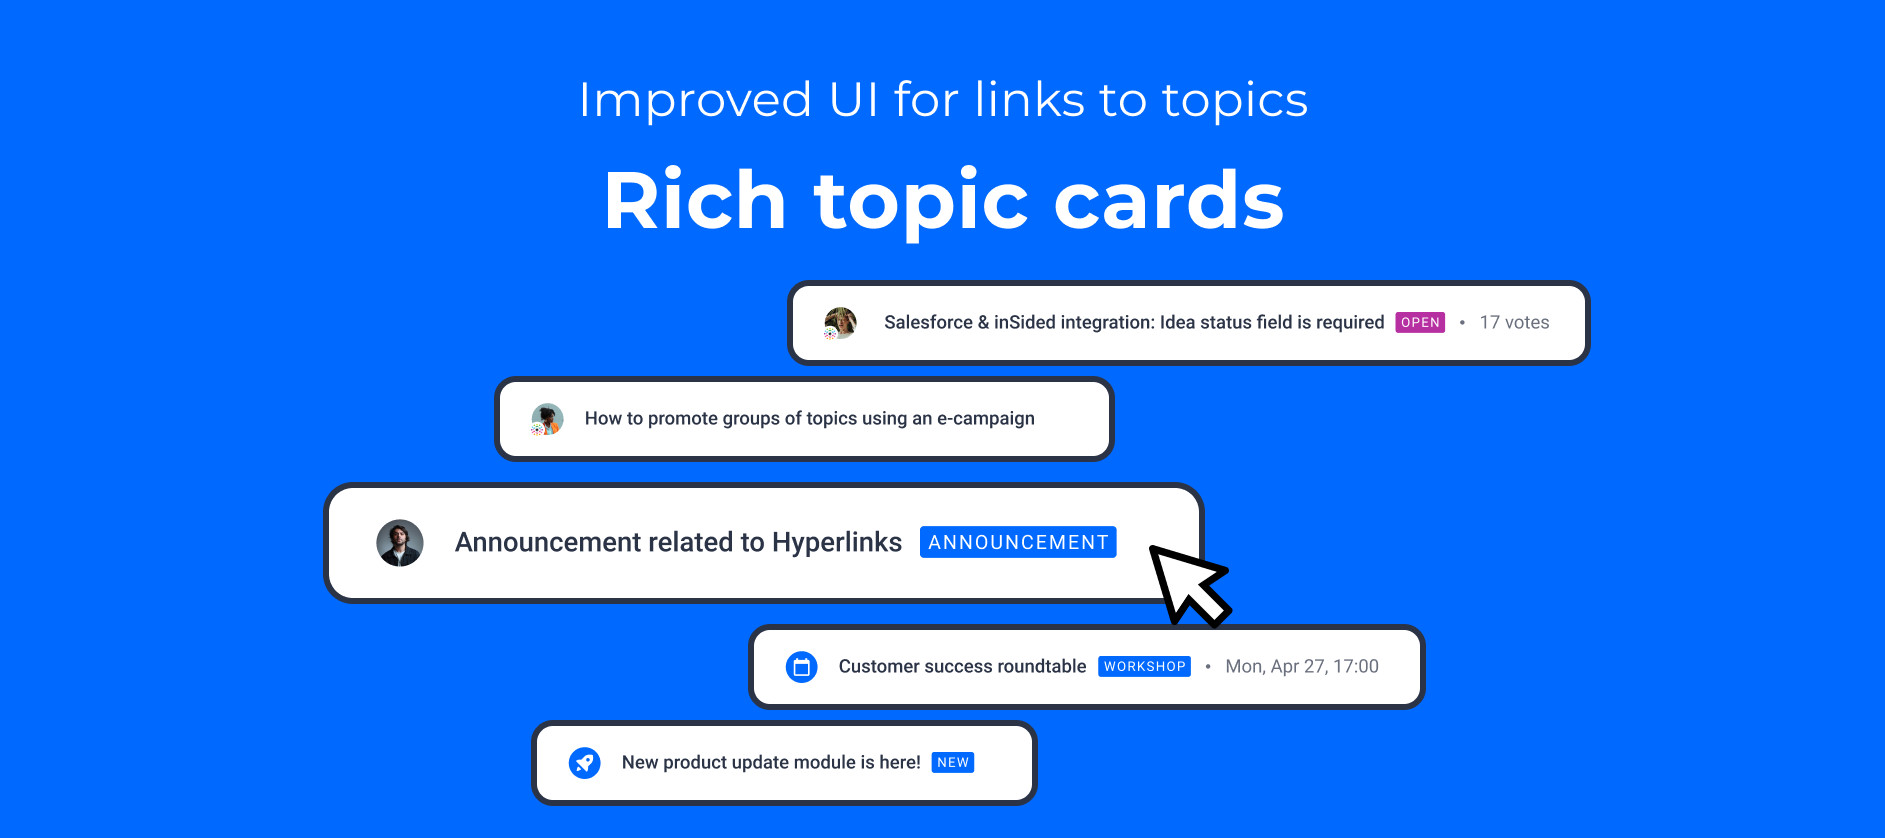 🔗 Improved UI for links to topics: Meet Rich topic cards